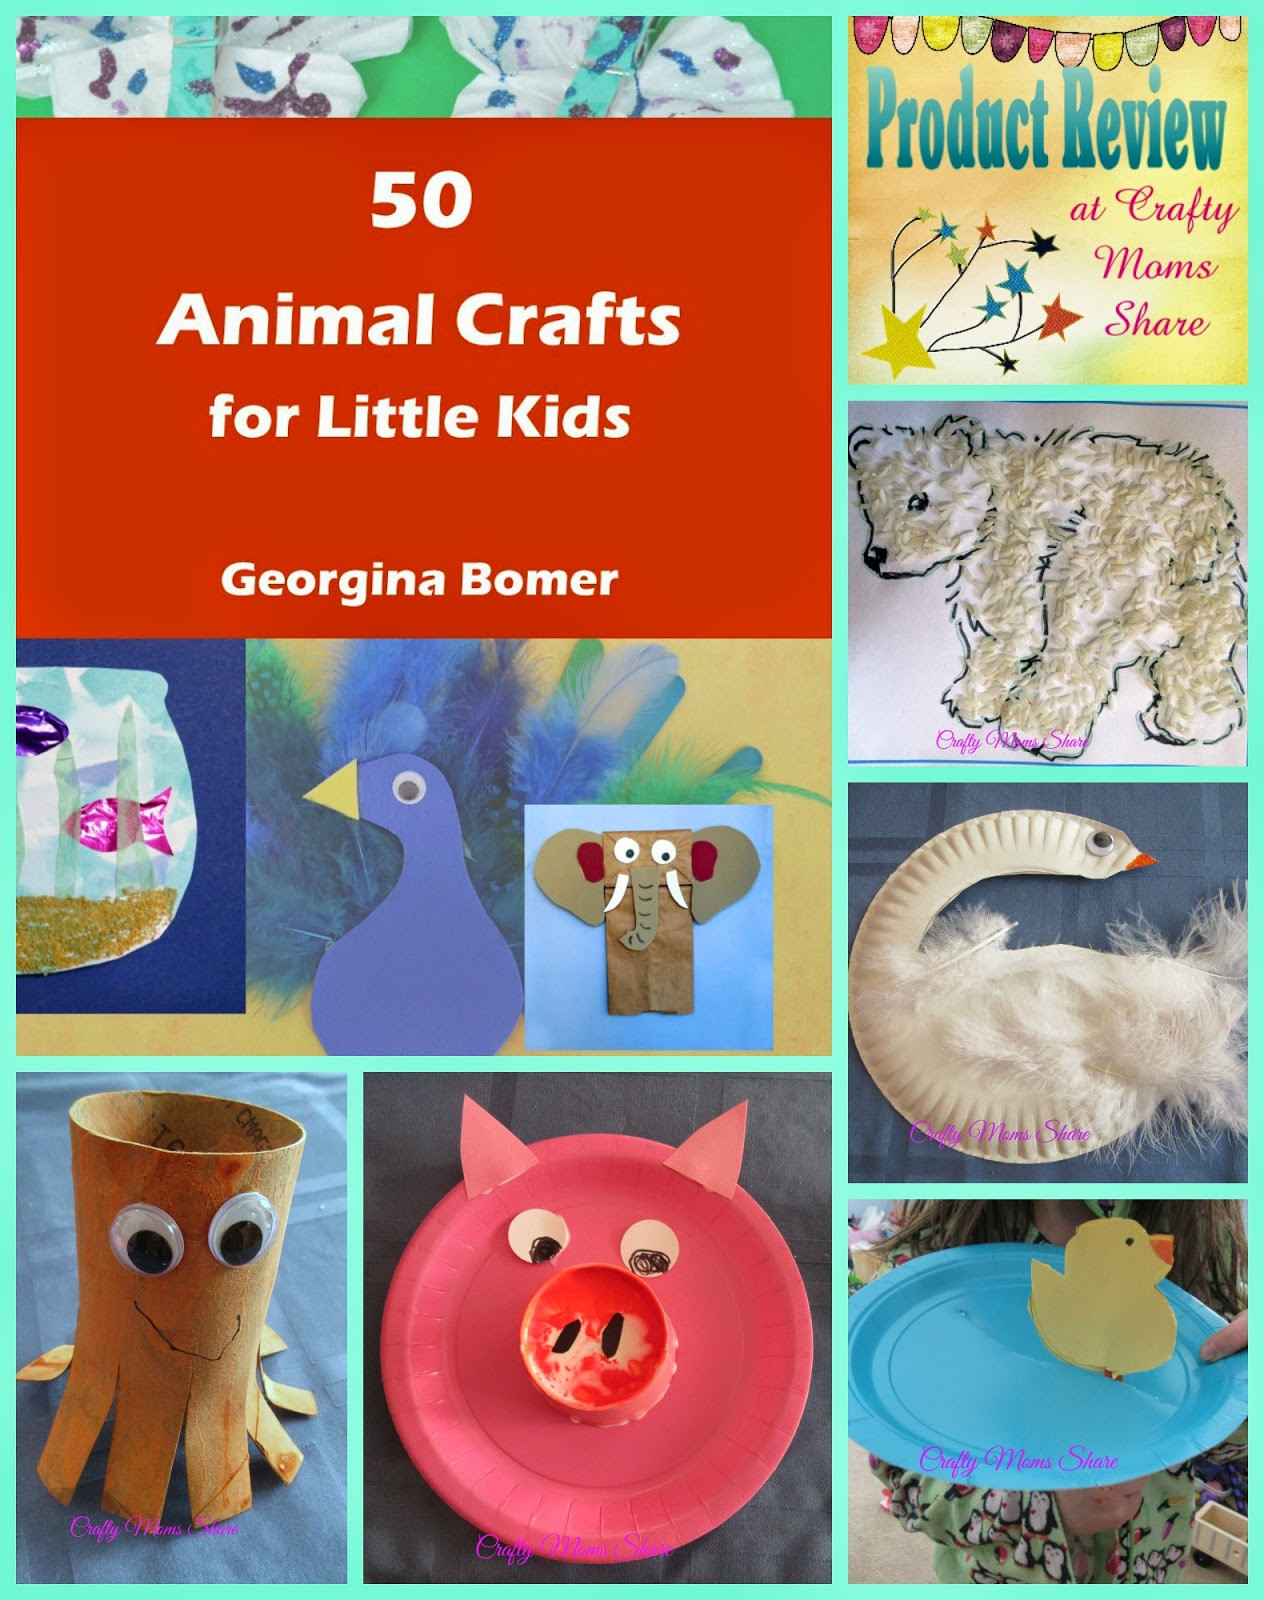 Arts And Crafts For Little Kids  Crafty Moms 50 Animal Crafts for Little Kids Book